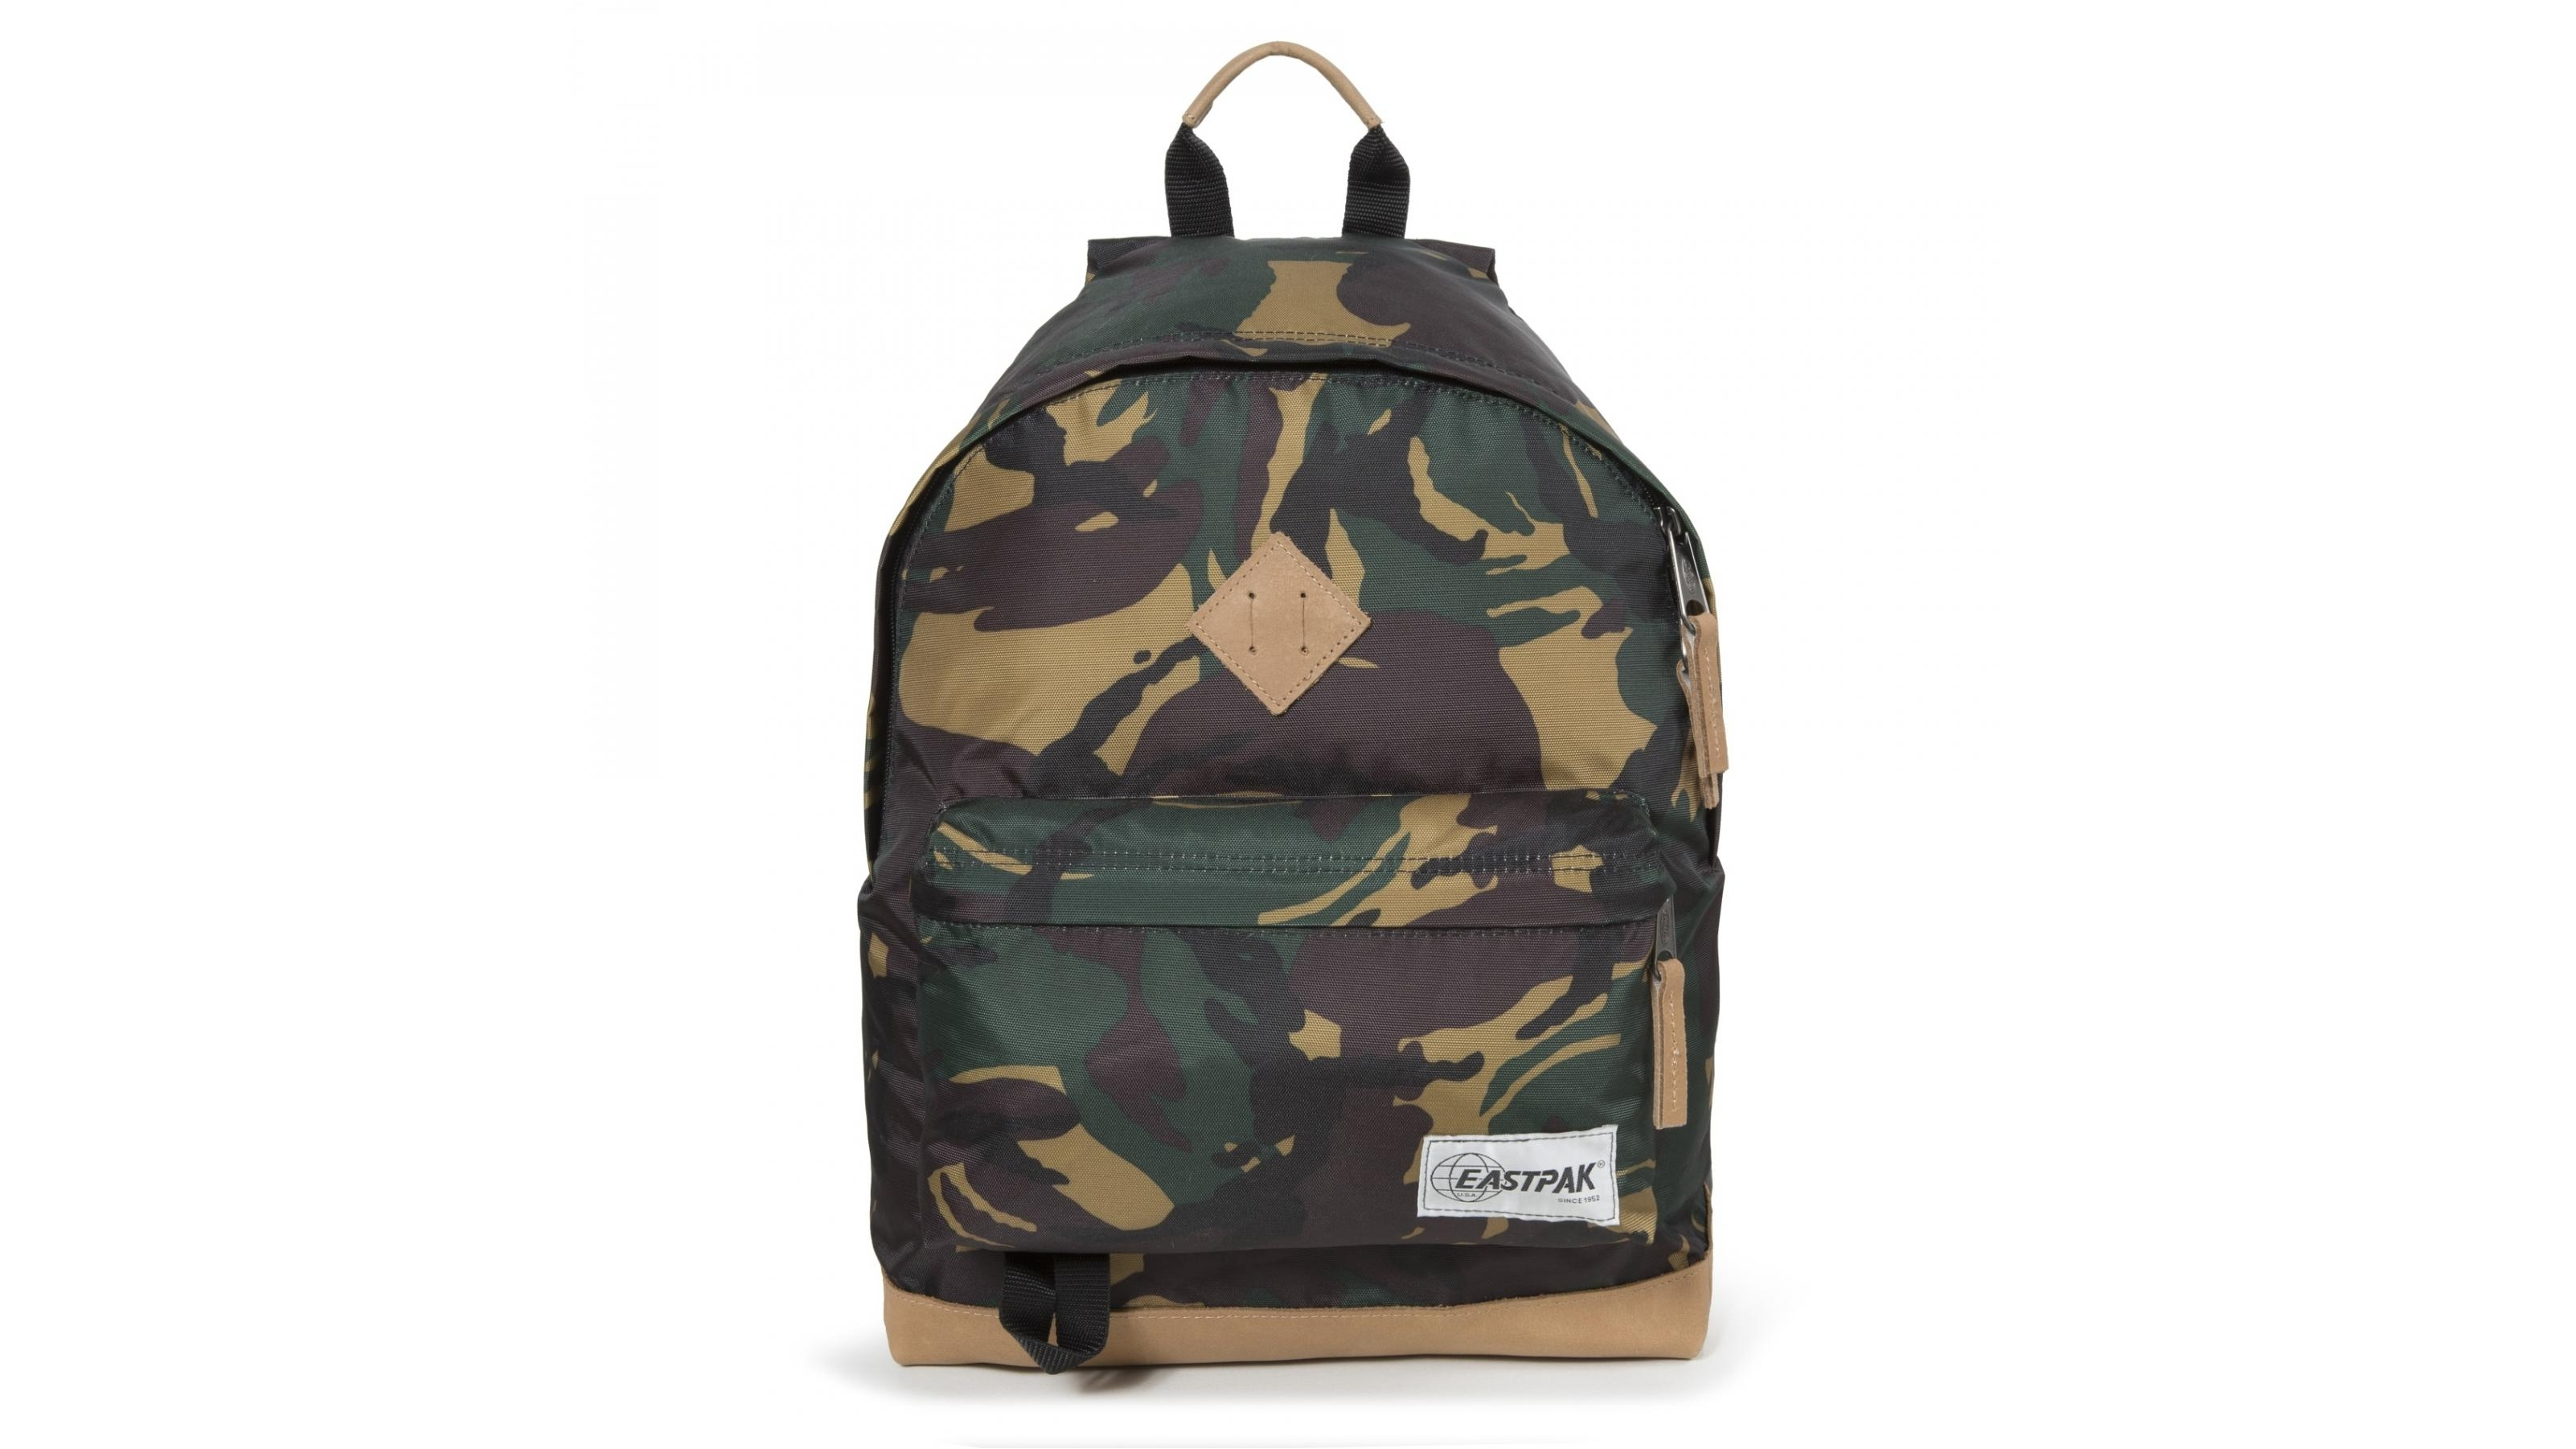 e8be902eff76 Buy Eastpak Wyoming Laptop Bag - Into Camo